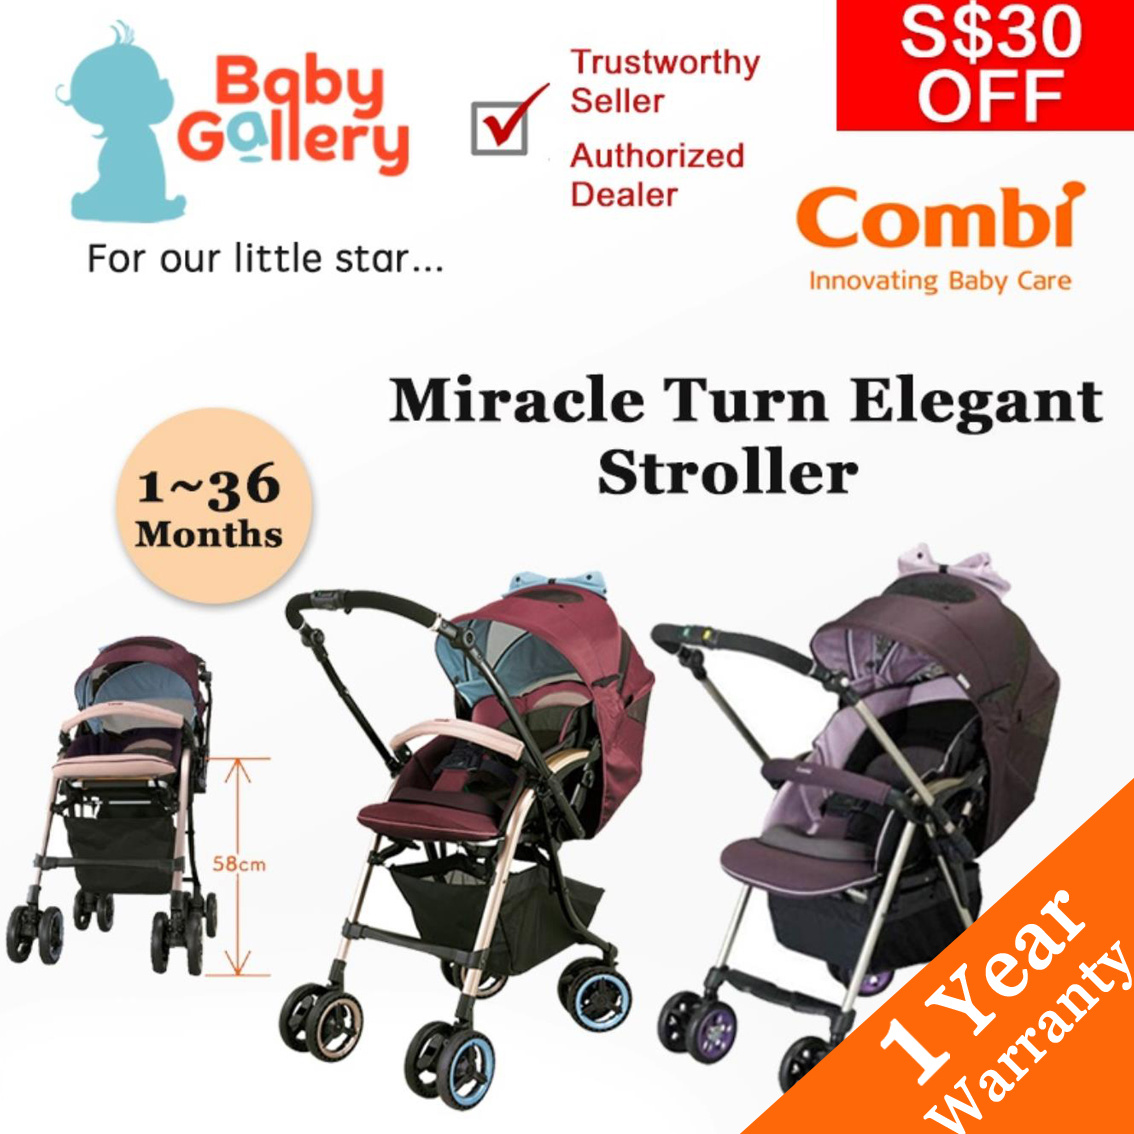 Combi Stroller Models Combicombi Miracle Turn Elegant Stroller A Type Baby Stroller 1 Month To 36 Months Free Delivery